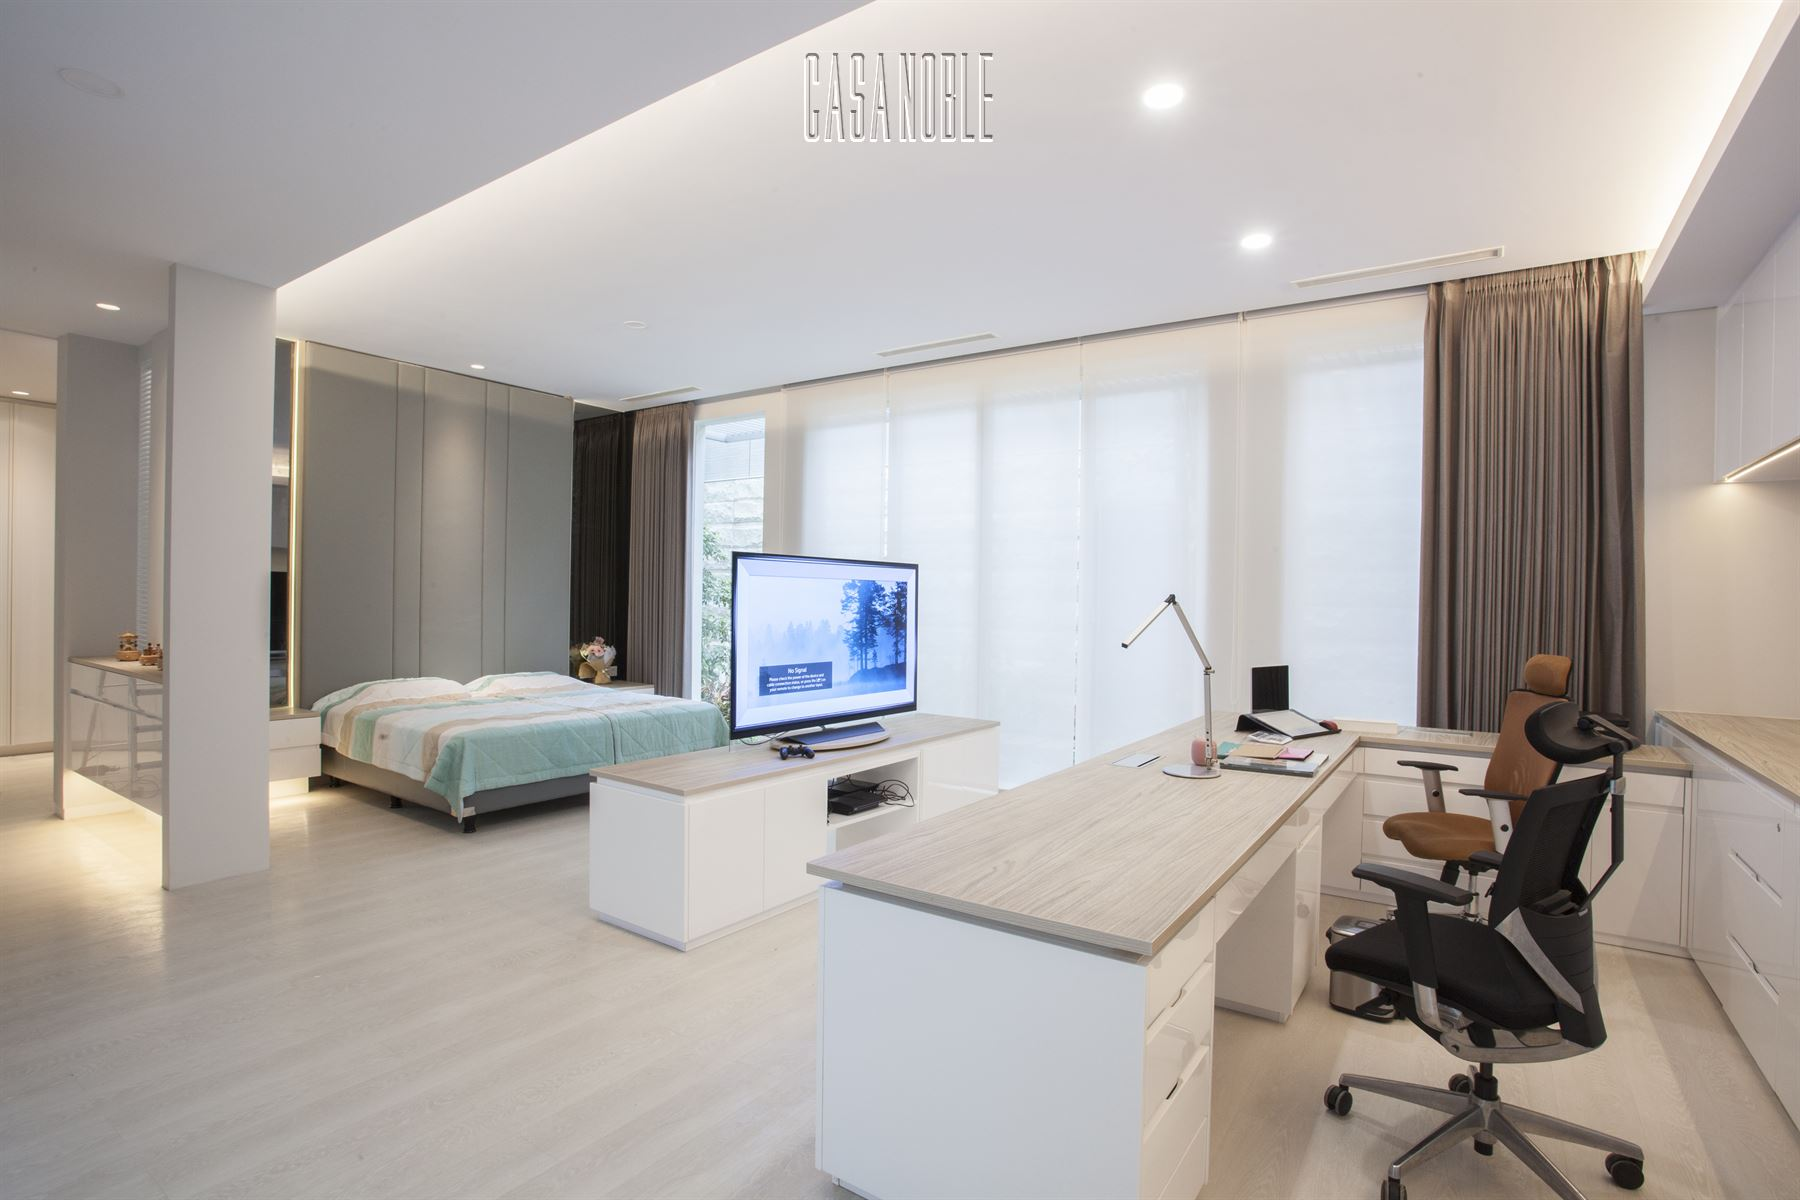 Master Room (Custom Bedroom and Office)